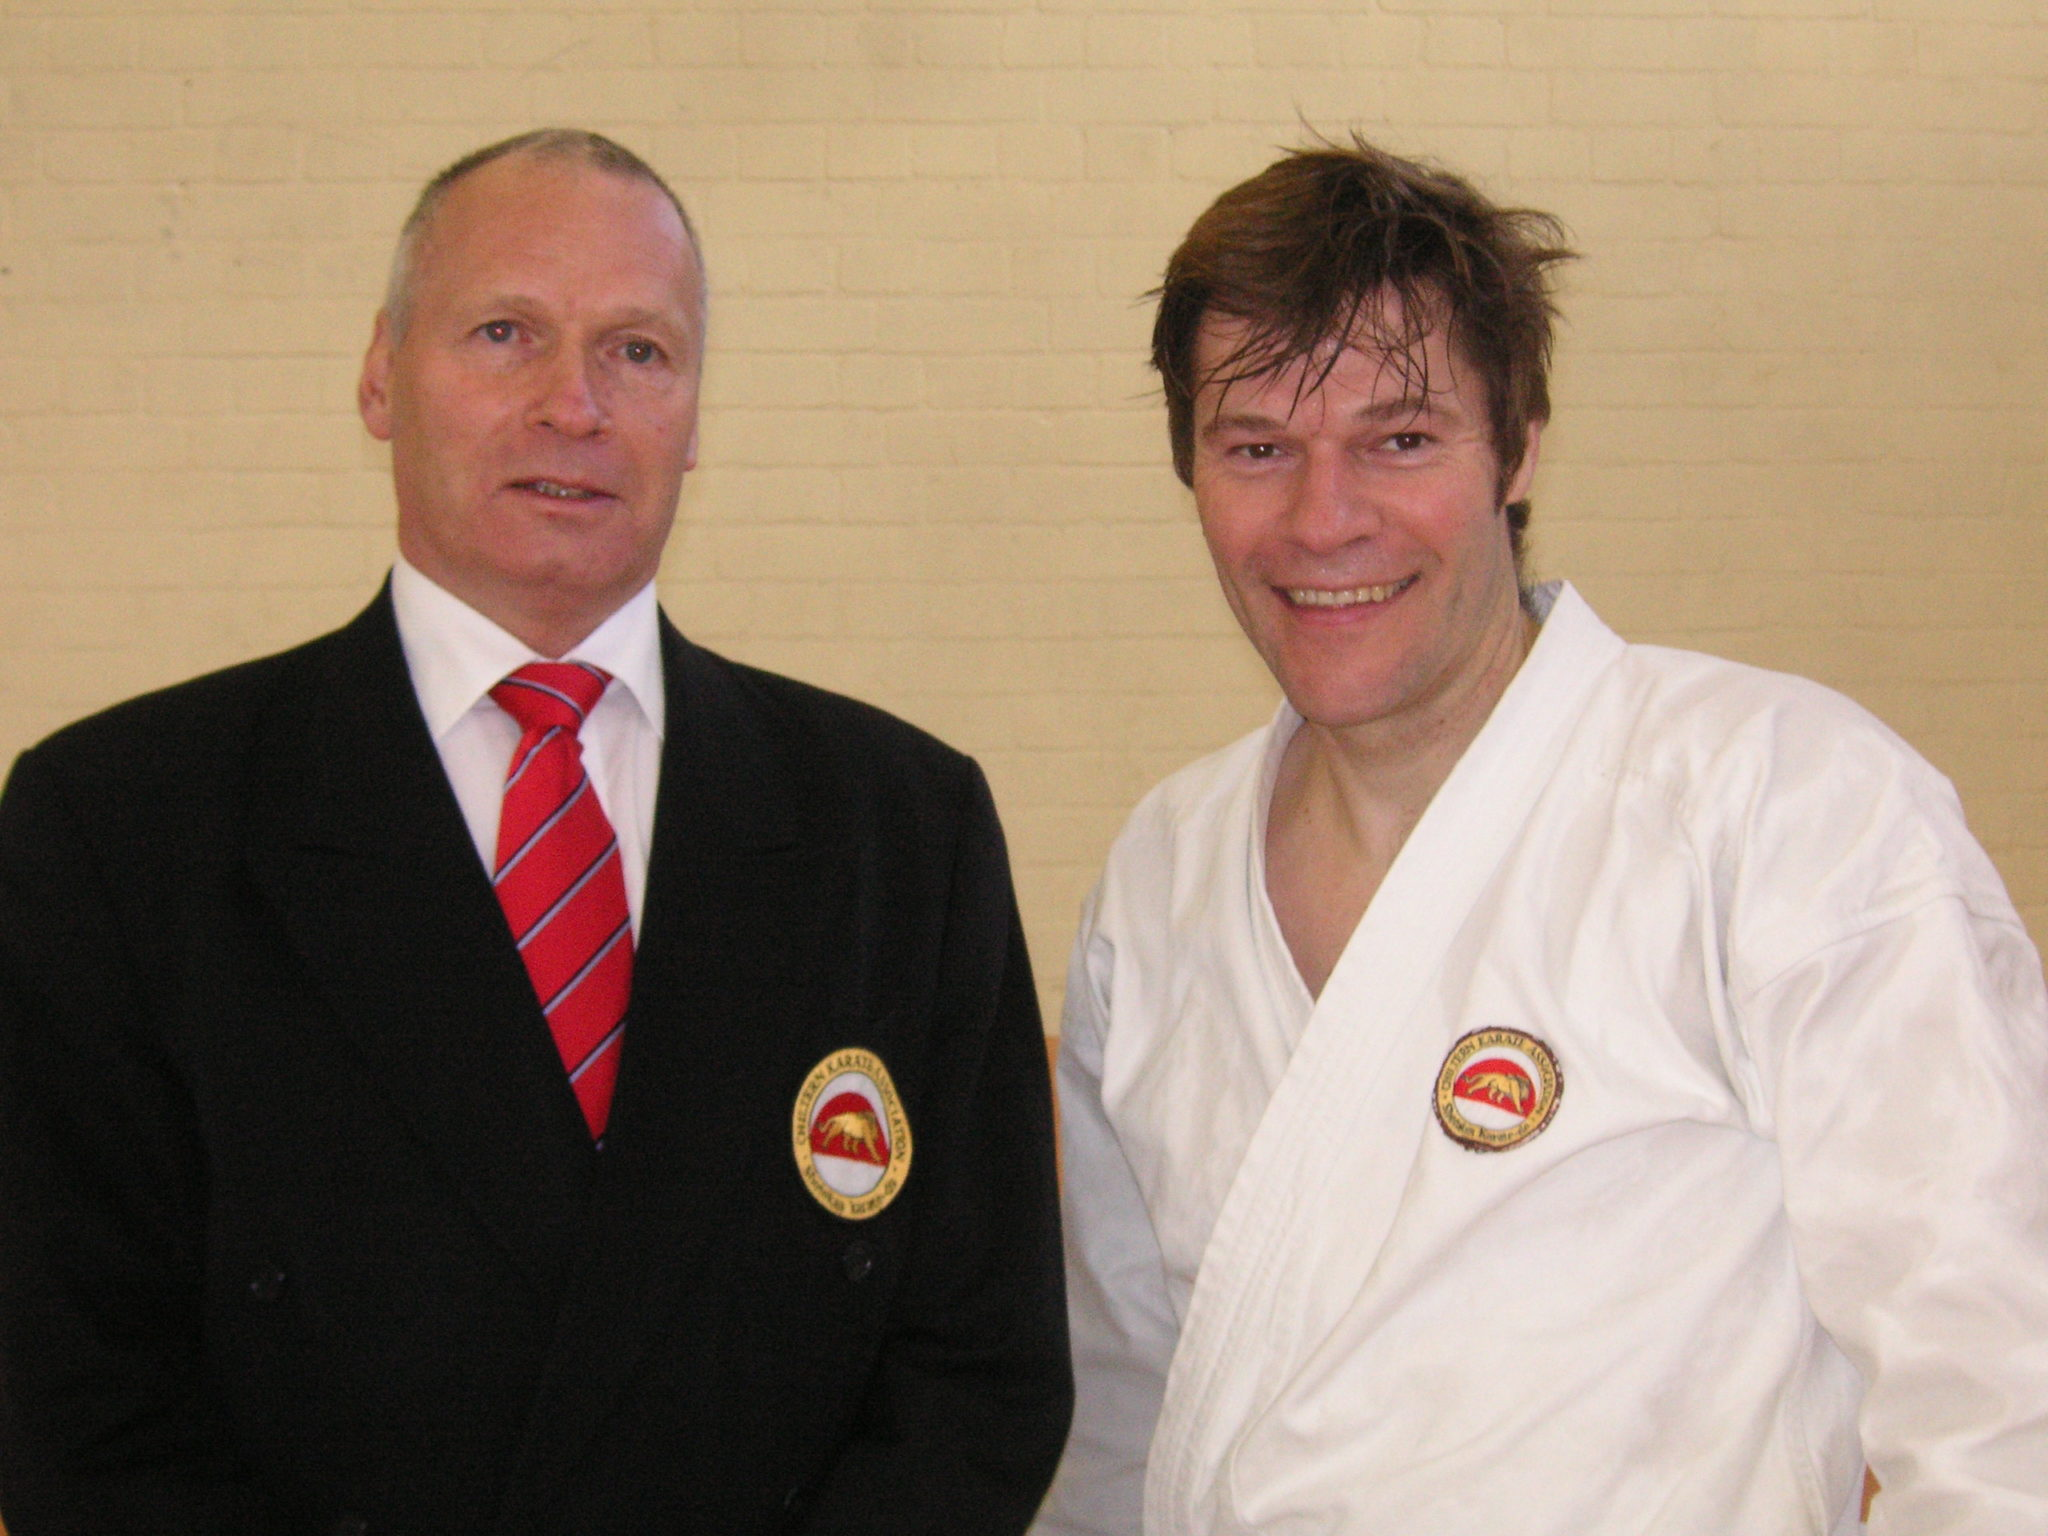 Michael Thornton and Sensei Ashley Croft